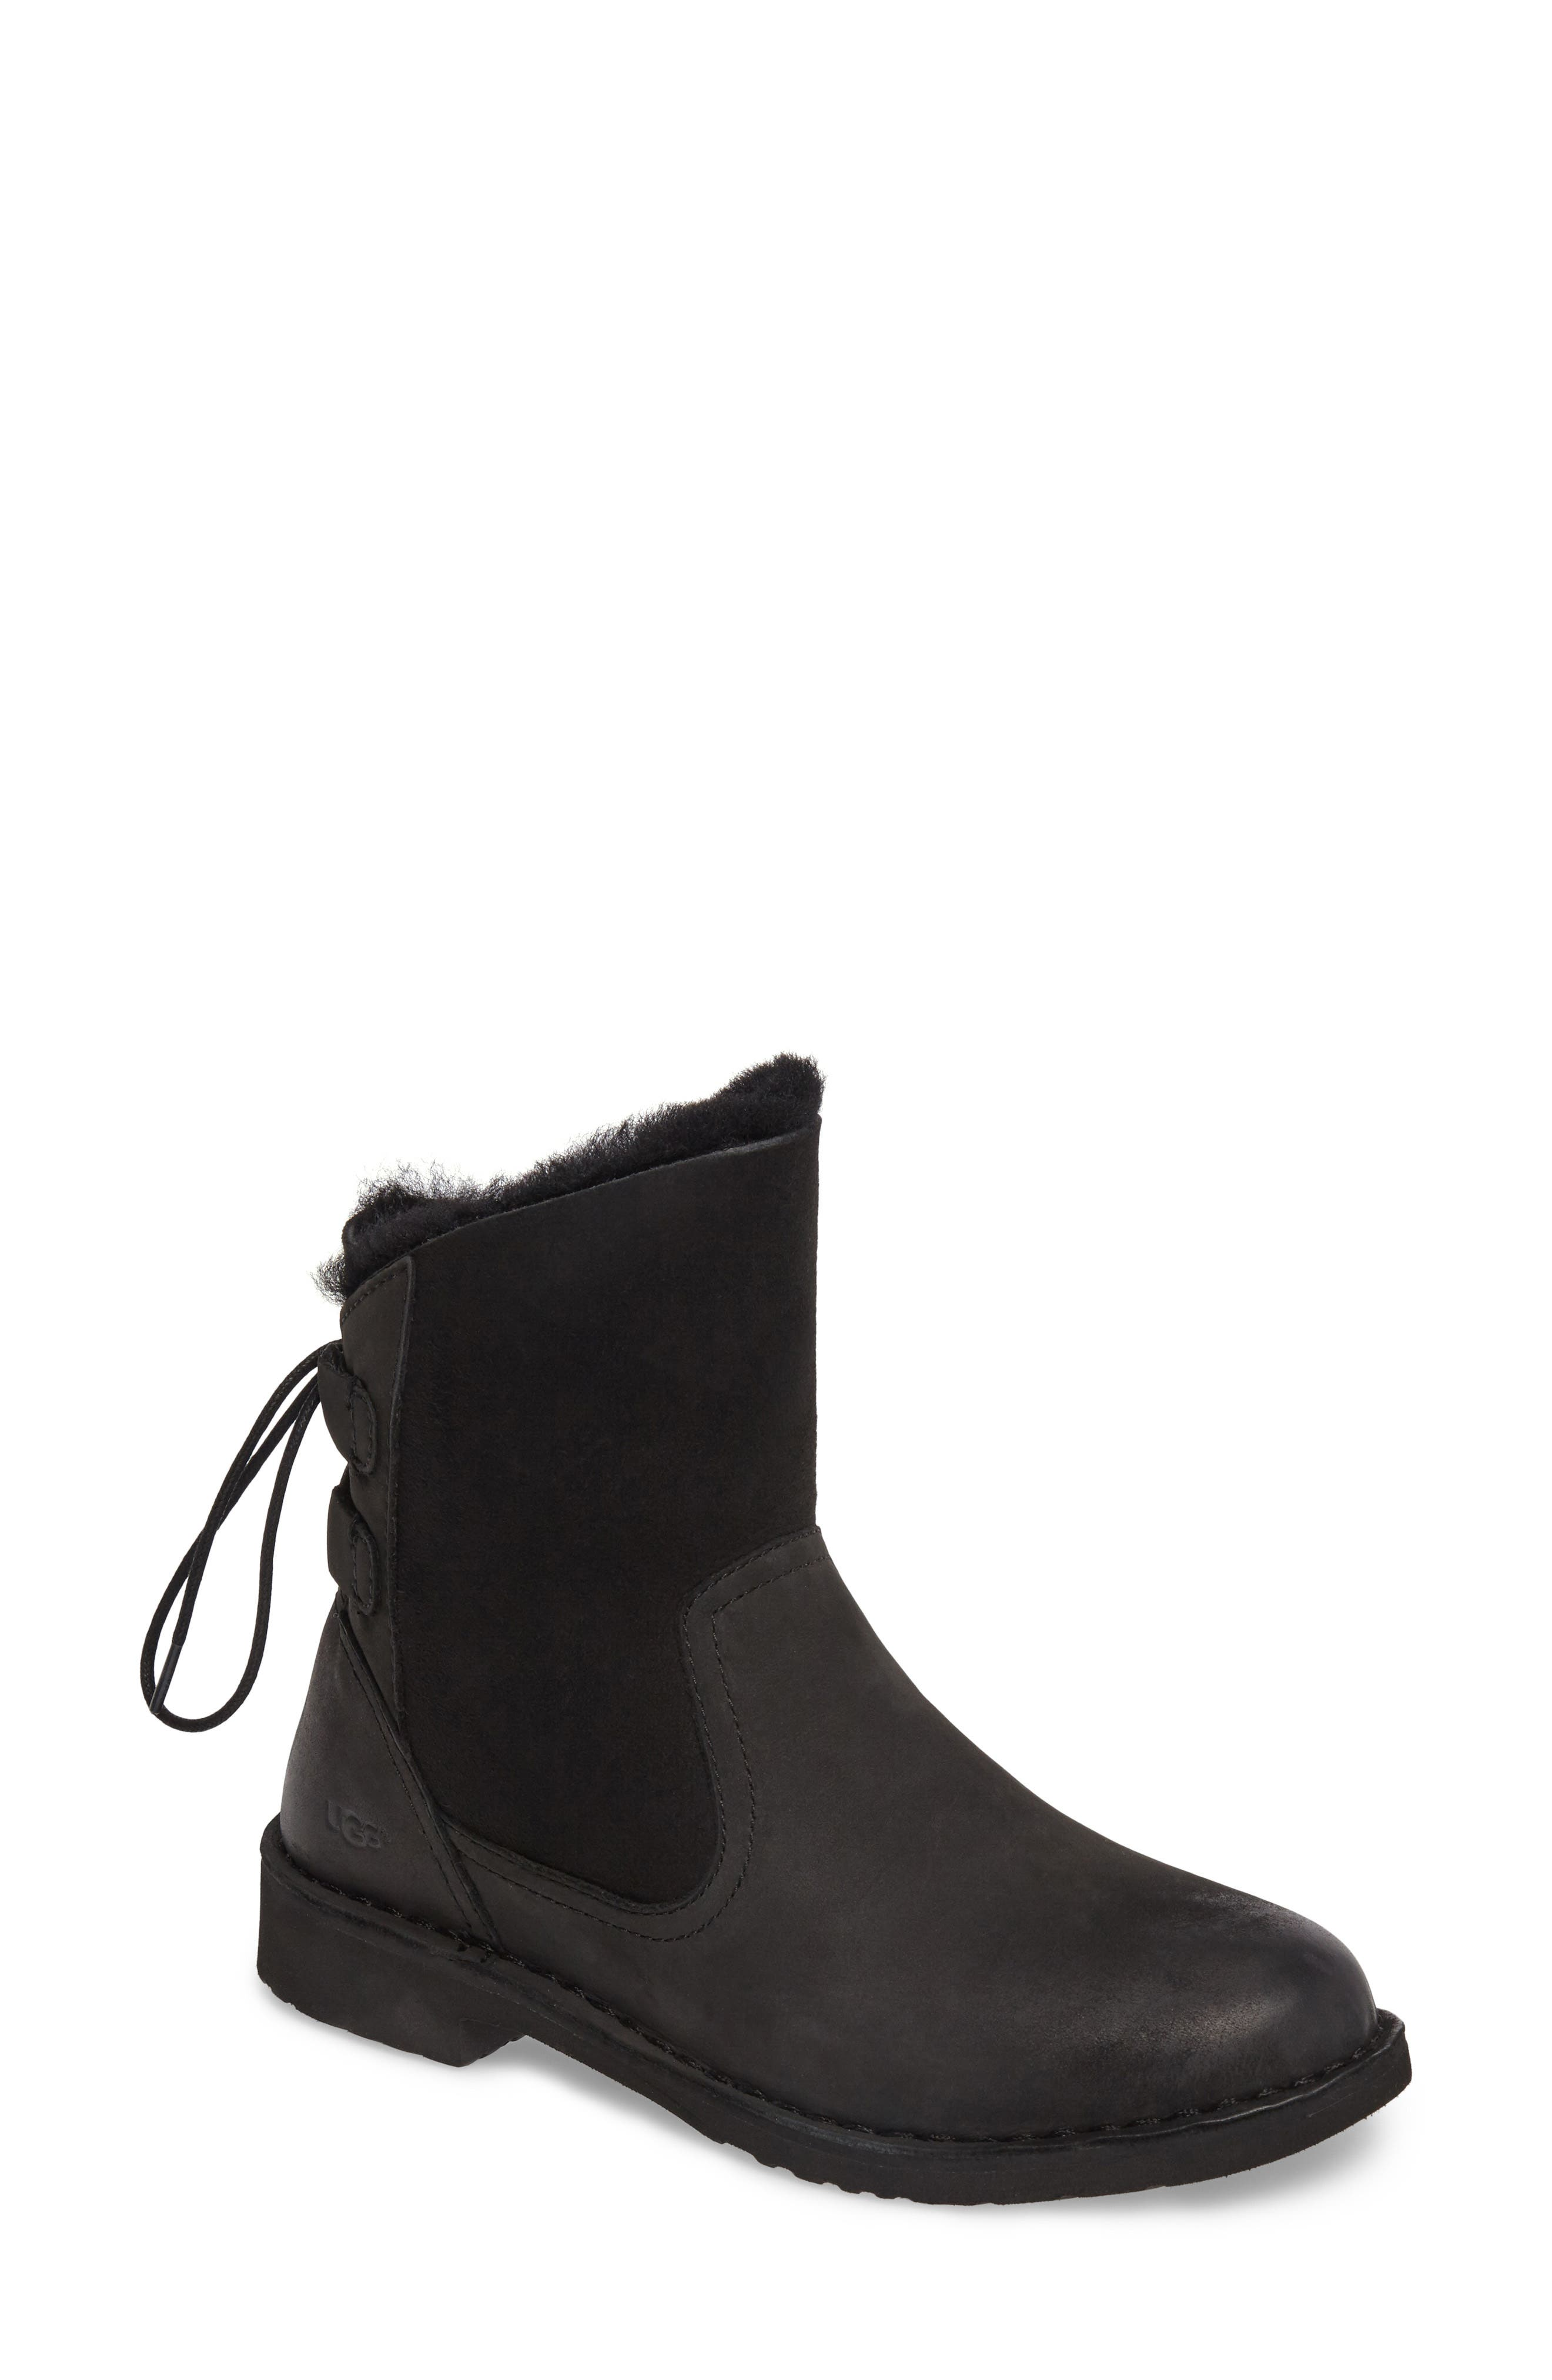 Naiyah Lace-Back Genuine Shearling Boot,                         Main,                         color, Black/ Black Nubuck Leather